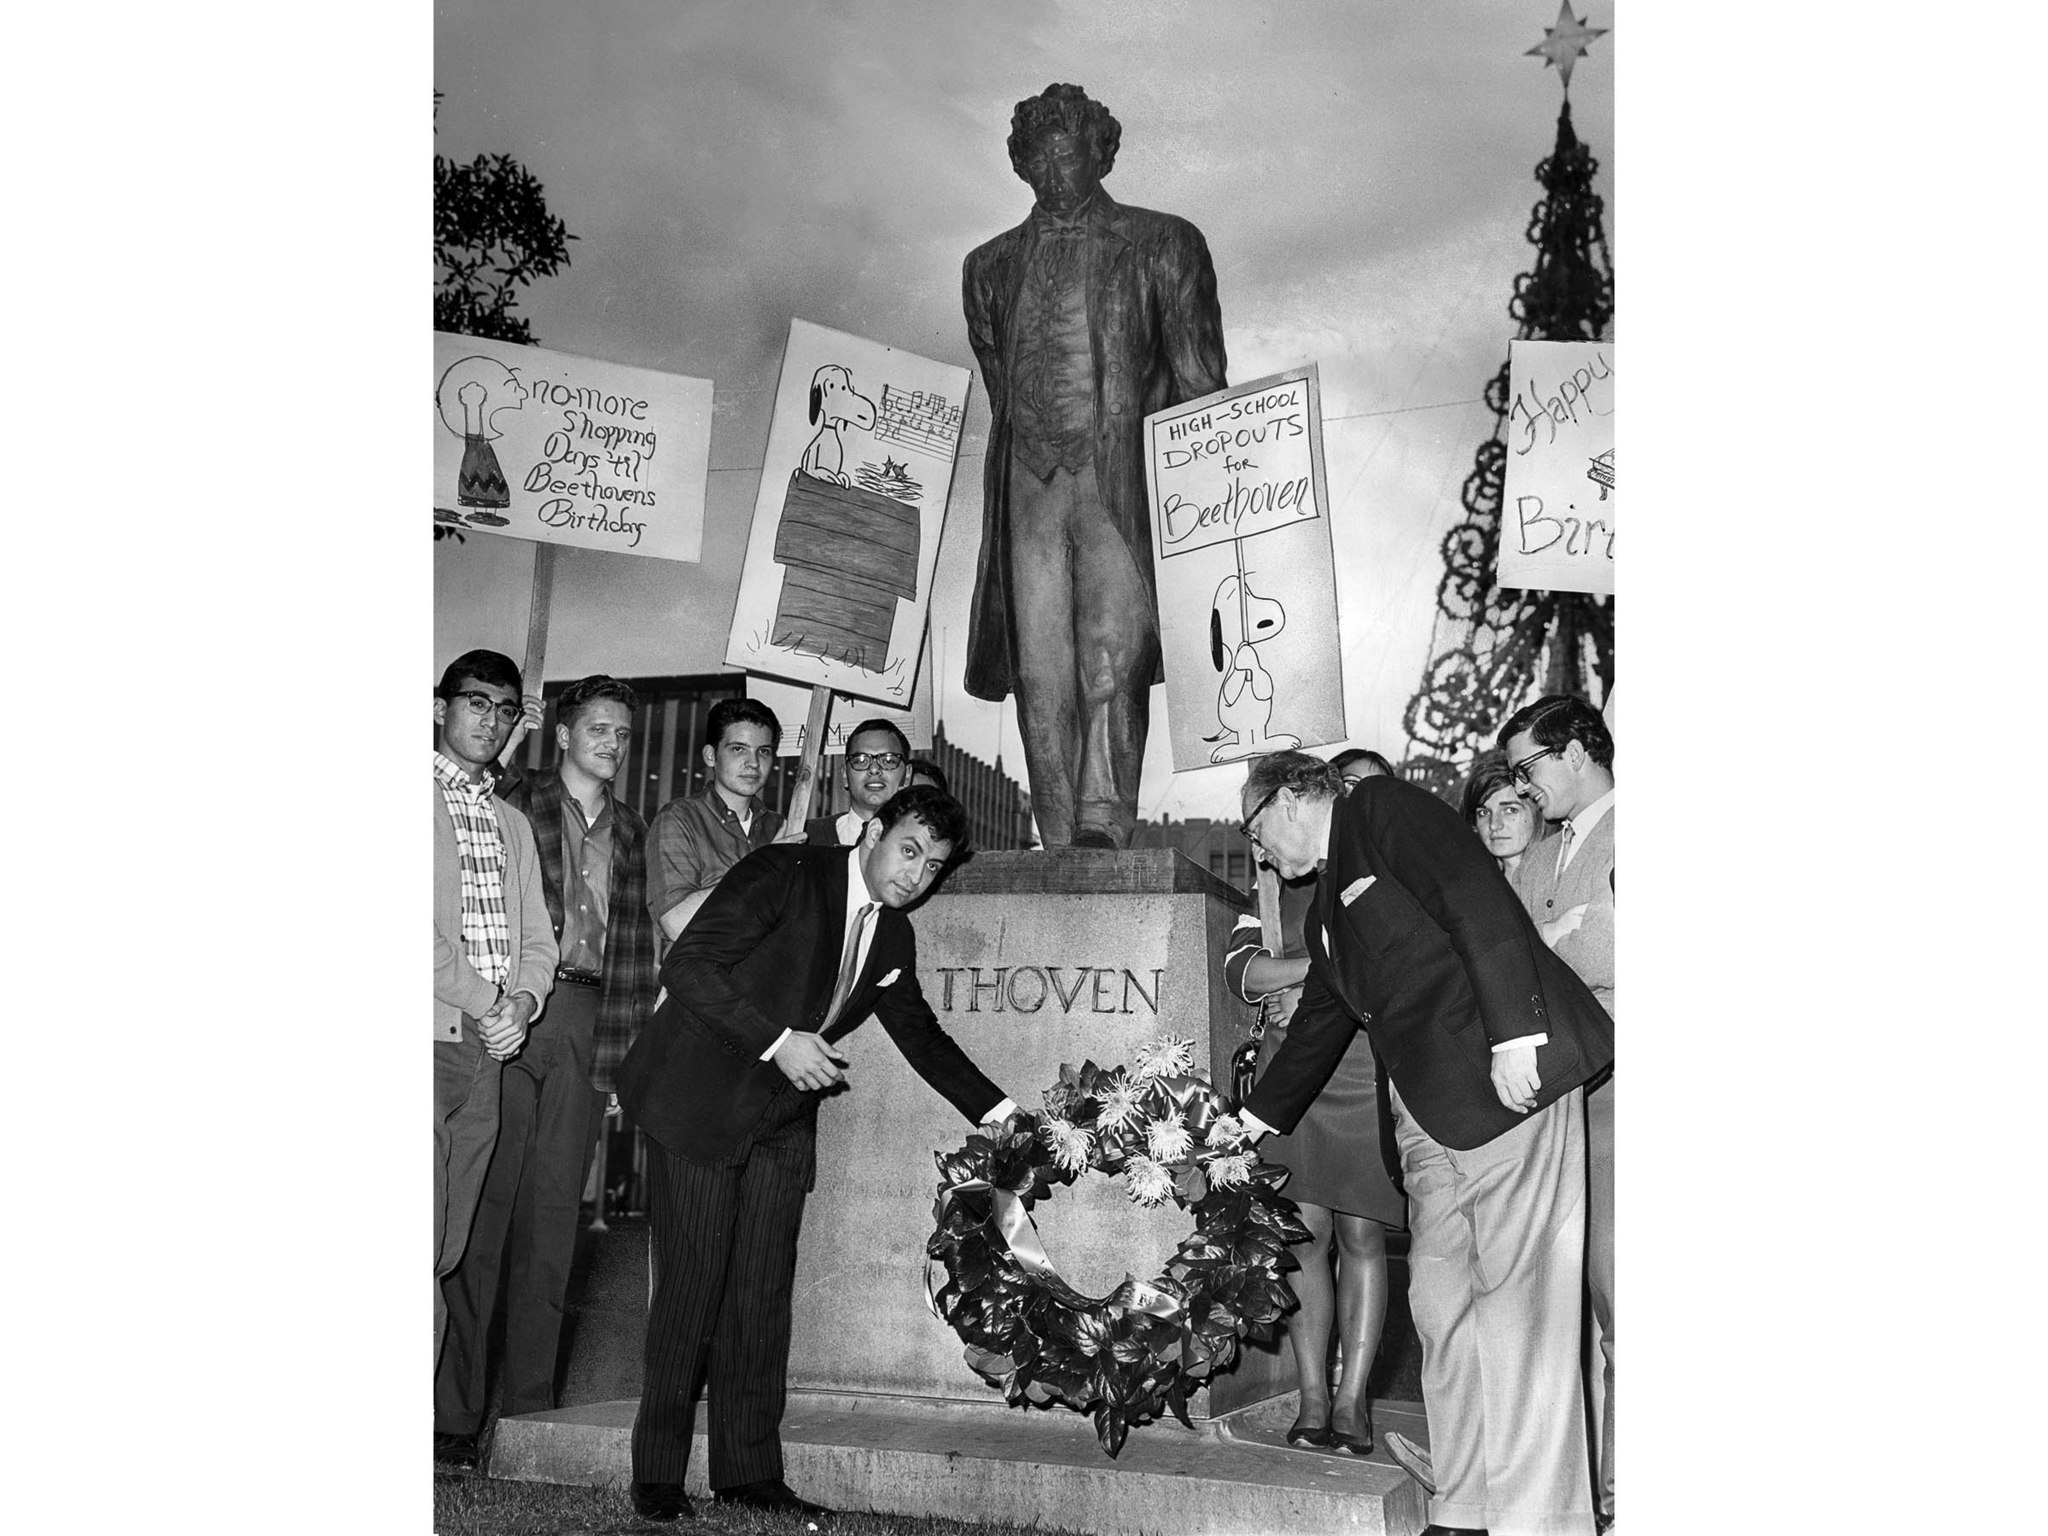 Dec. 16, 1966: Students armed with signs inspired by the comic strip Peanuts marched on Pershing Squ